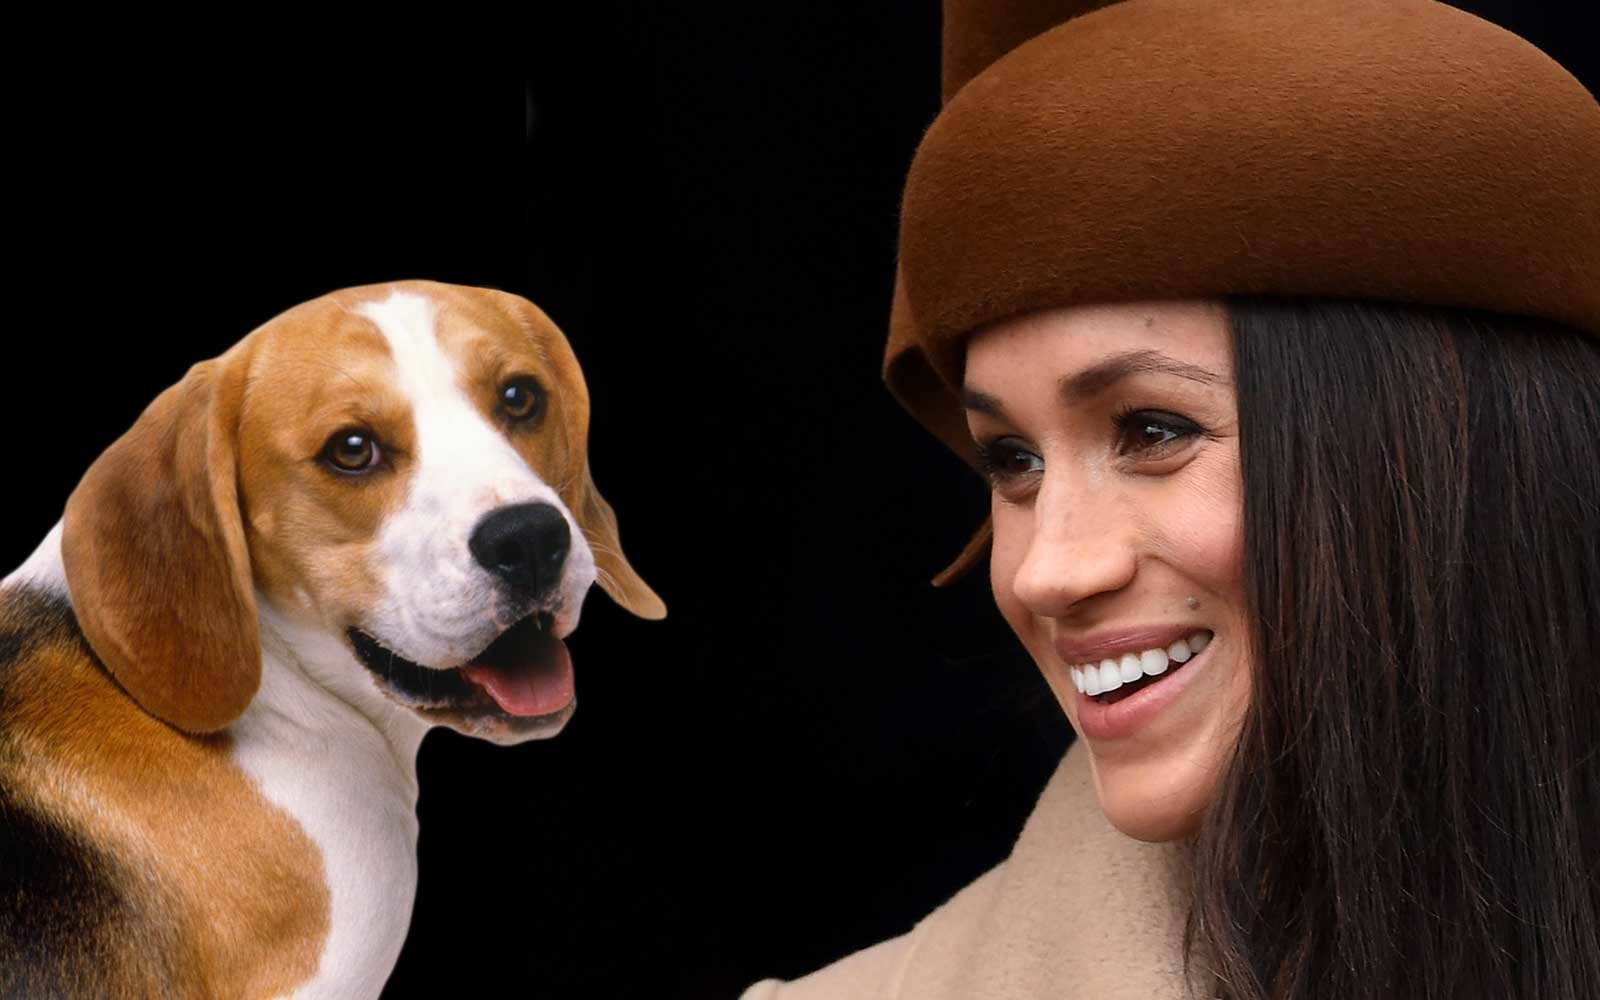 A Beagle dog and Meghan Markle